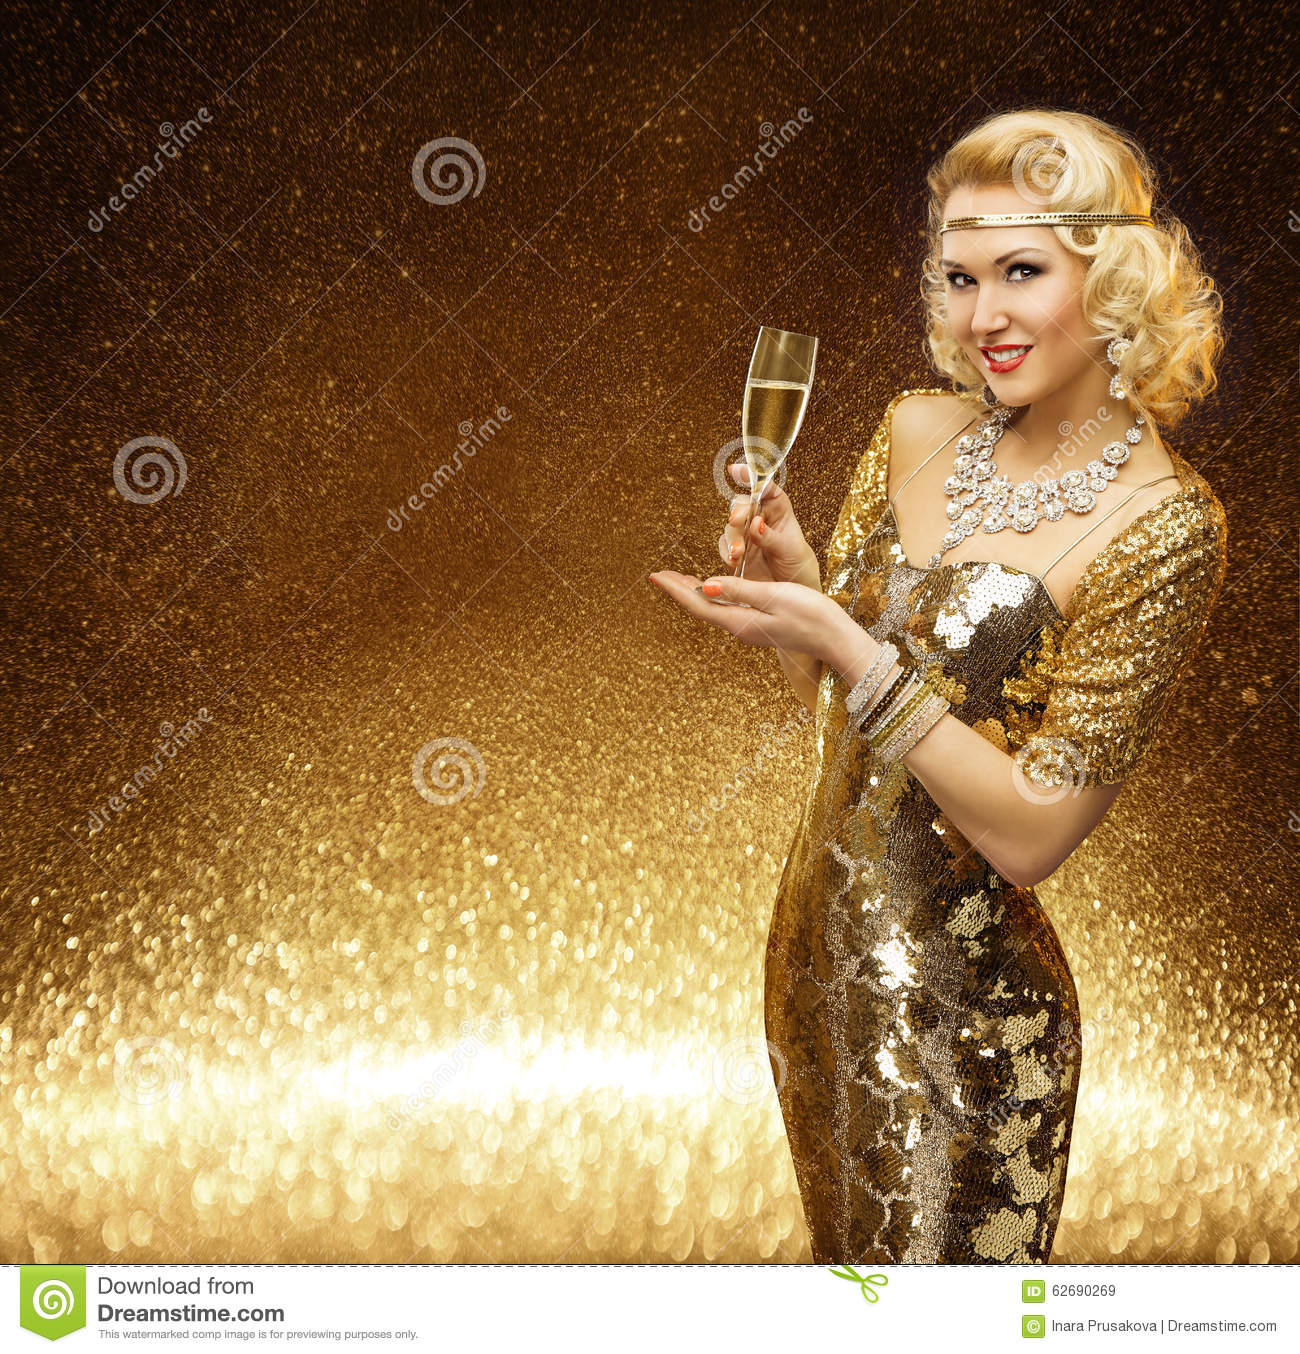 Vrouwengoud, VIP Dame Champagne Glass, Gouden Mannequin